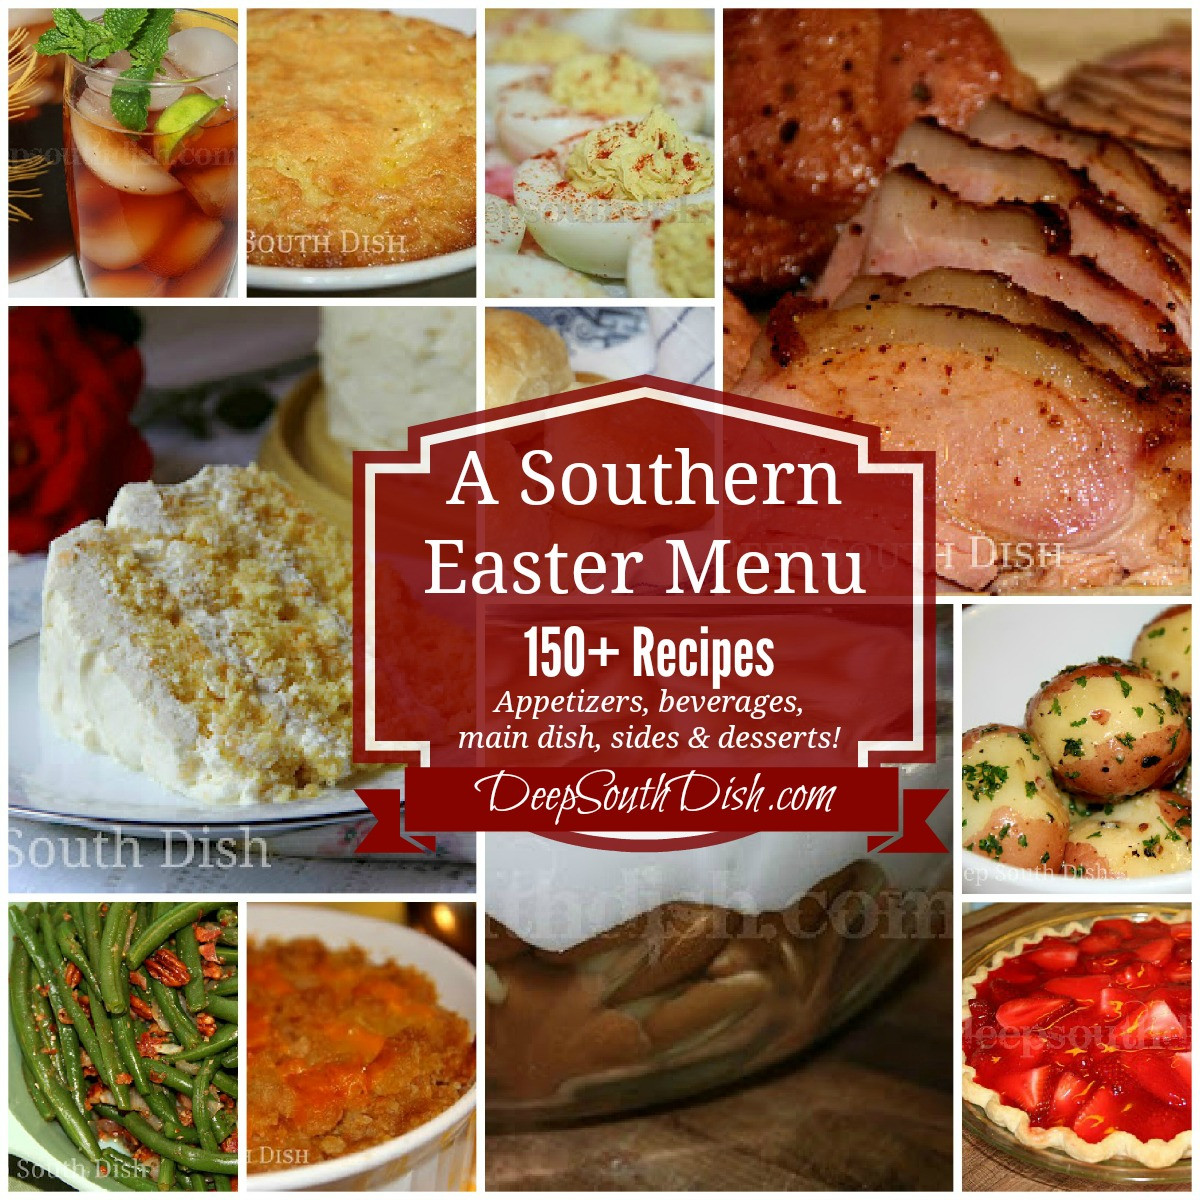 Easter Dinner Menu Ideas  Deep South Dish Southern Easter Menu Ideas and Recipes